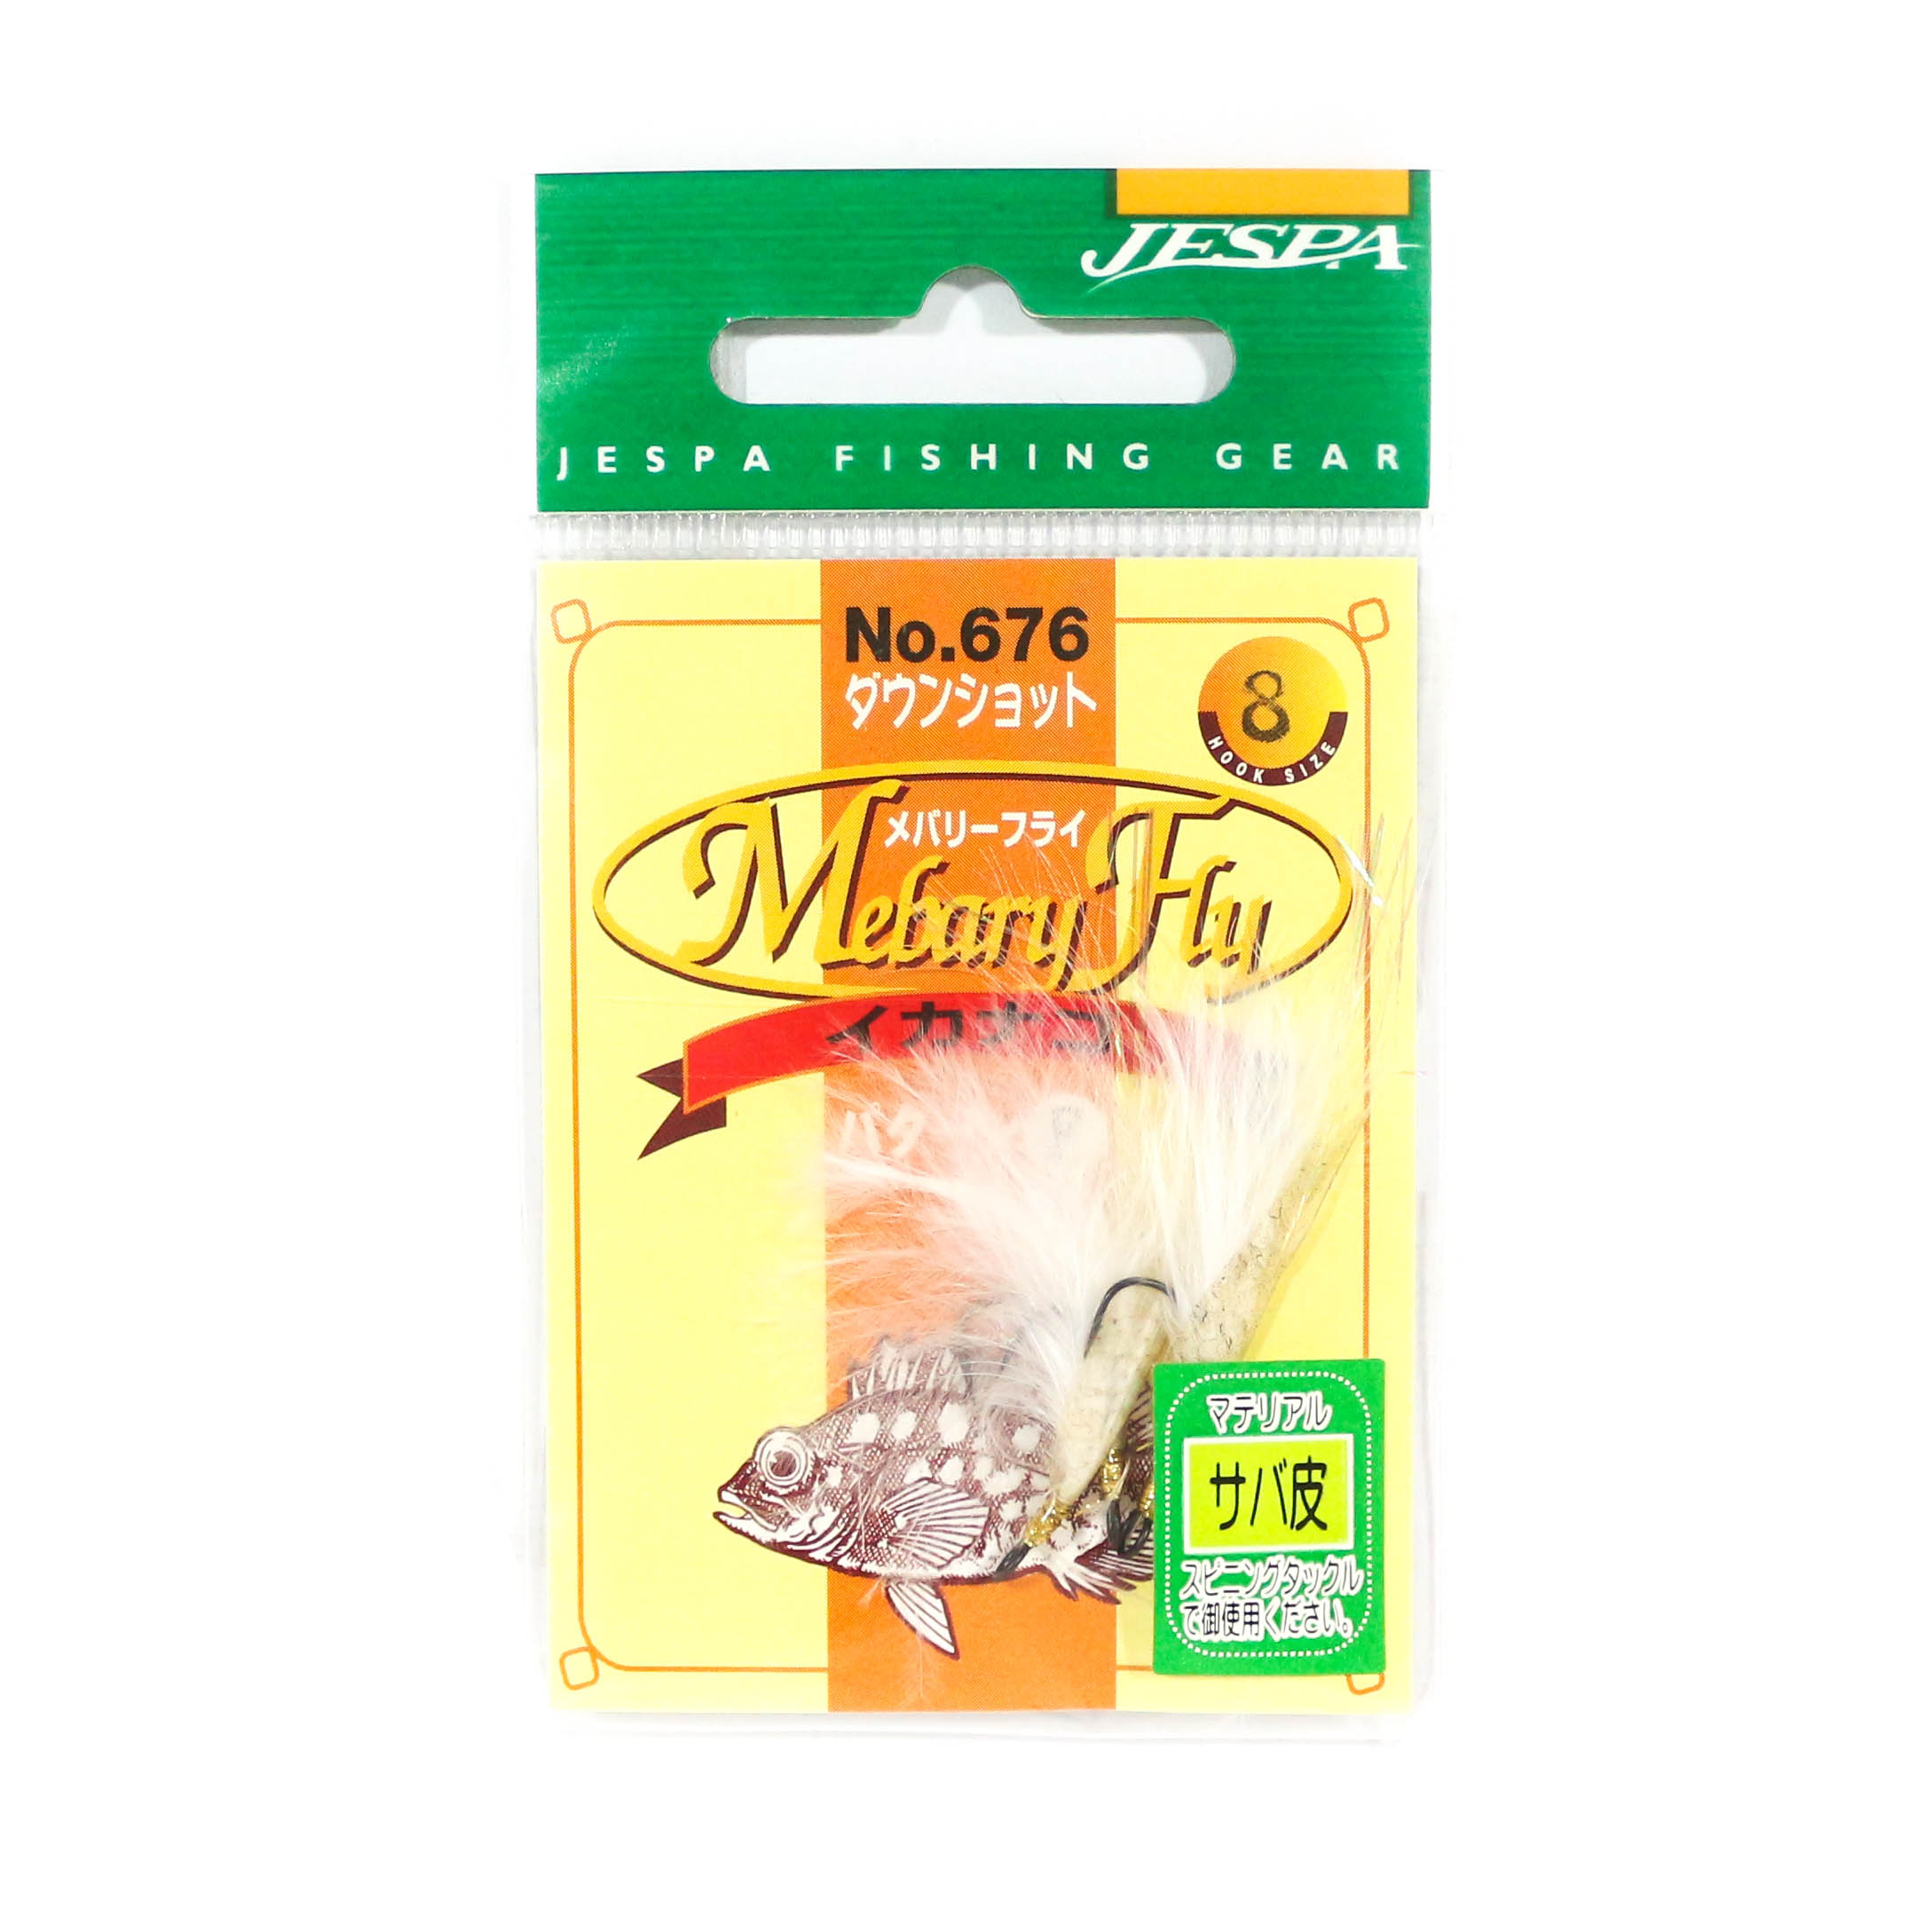 Yarie Jespa M. 676 Mebaru Fly Hook 3 piece per pack White Size 8 (2019)